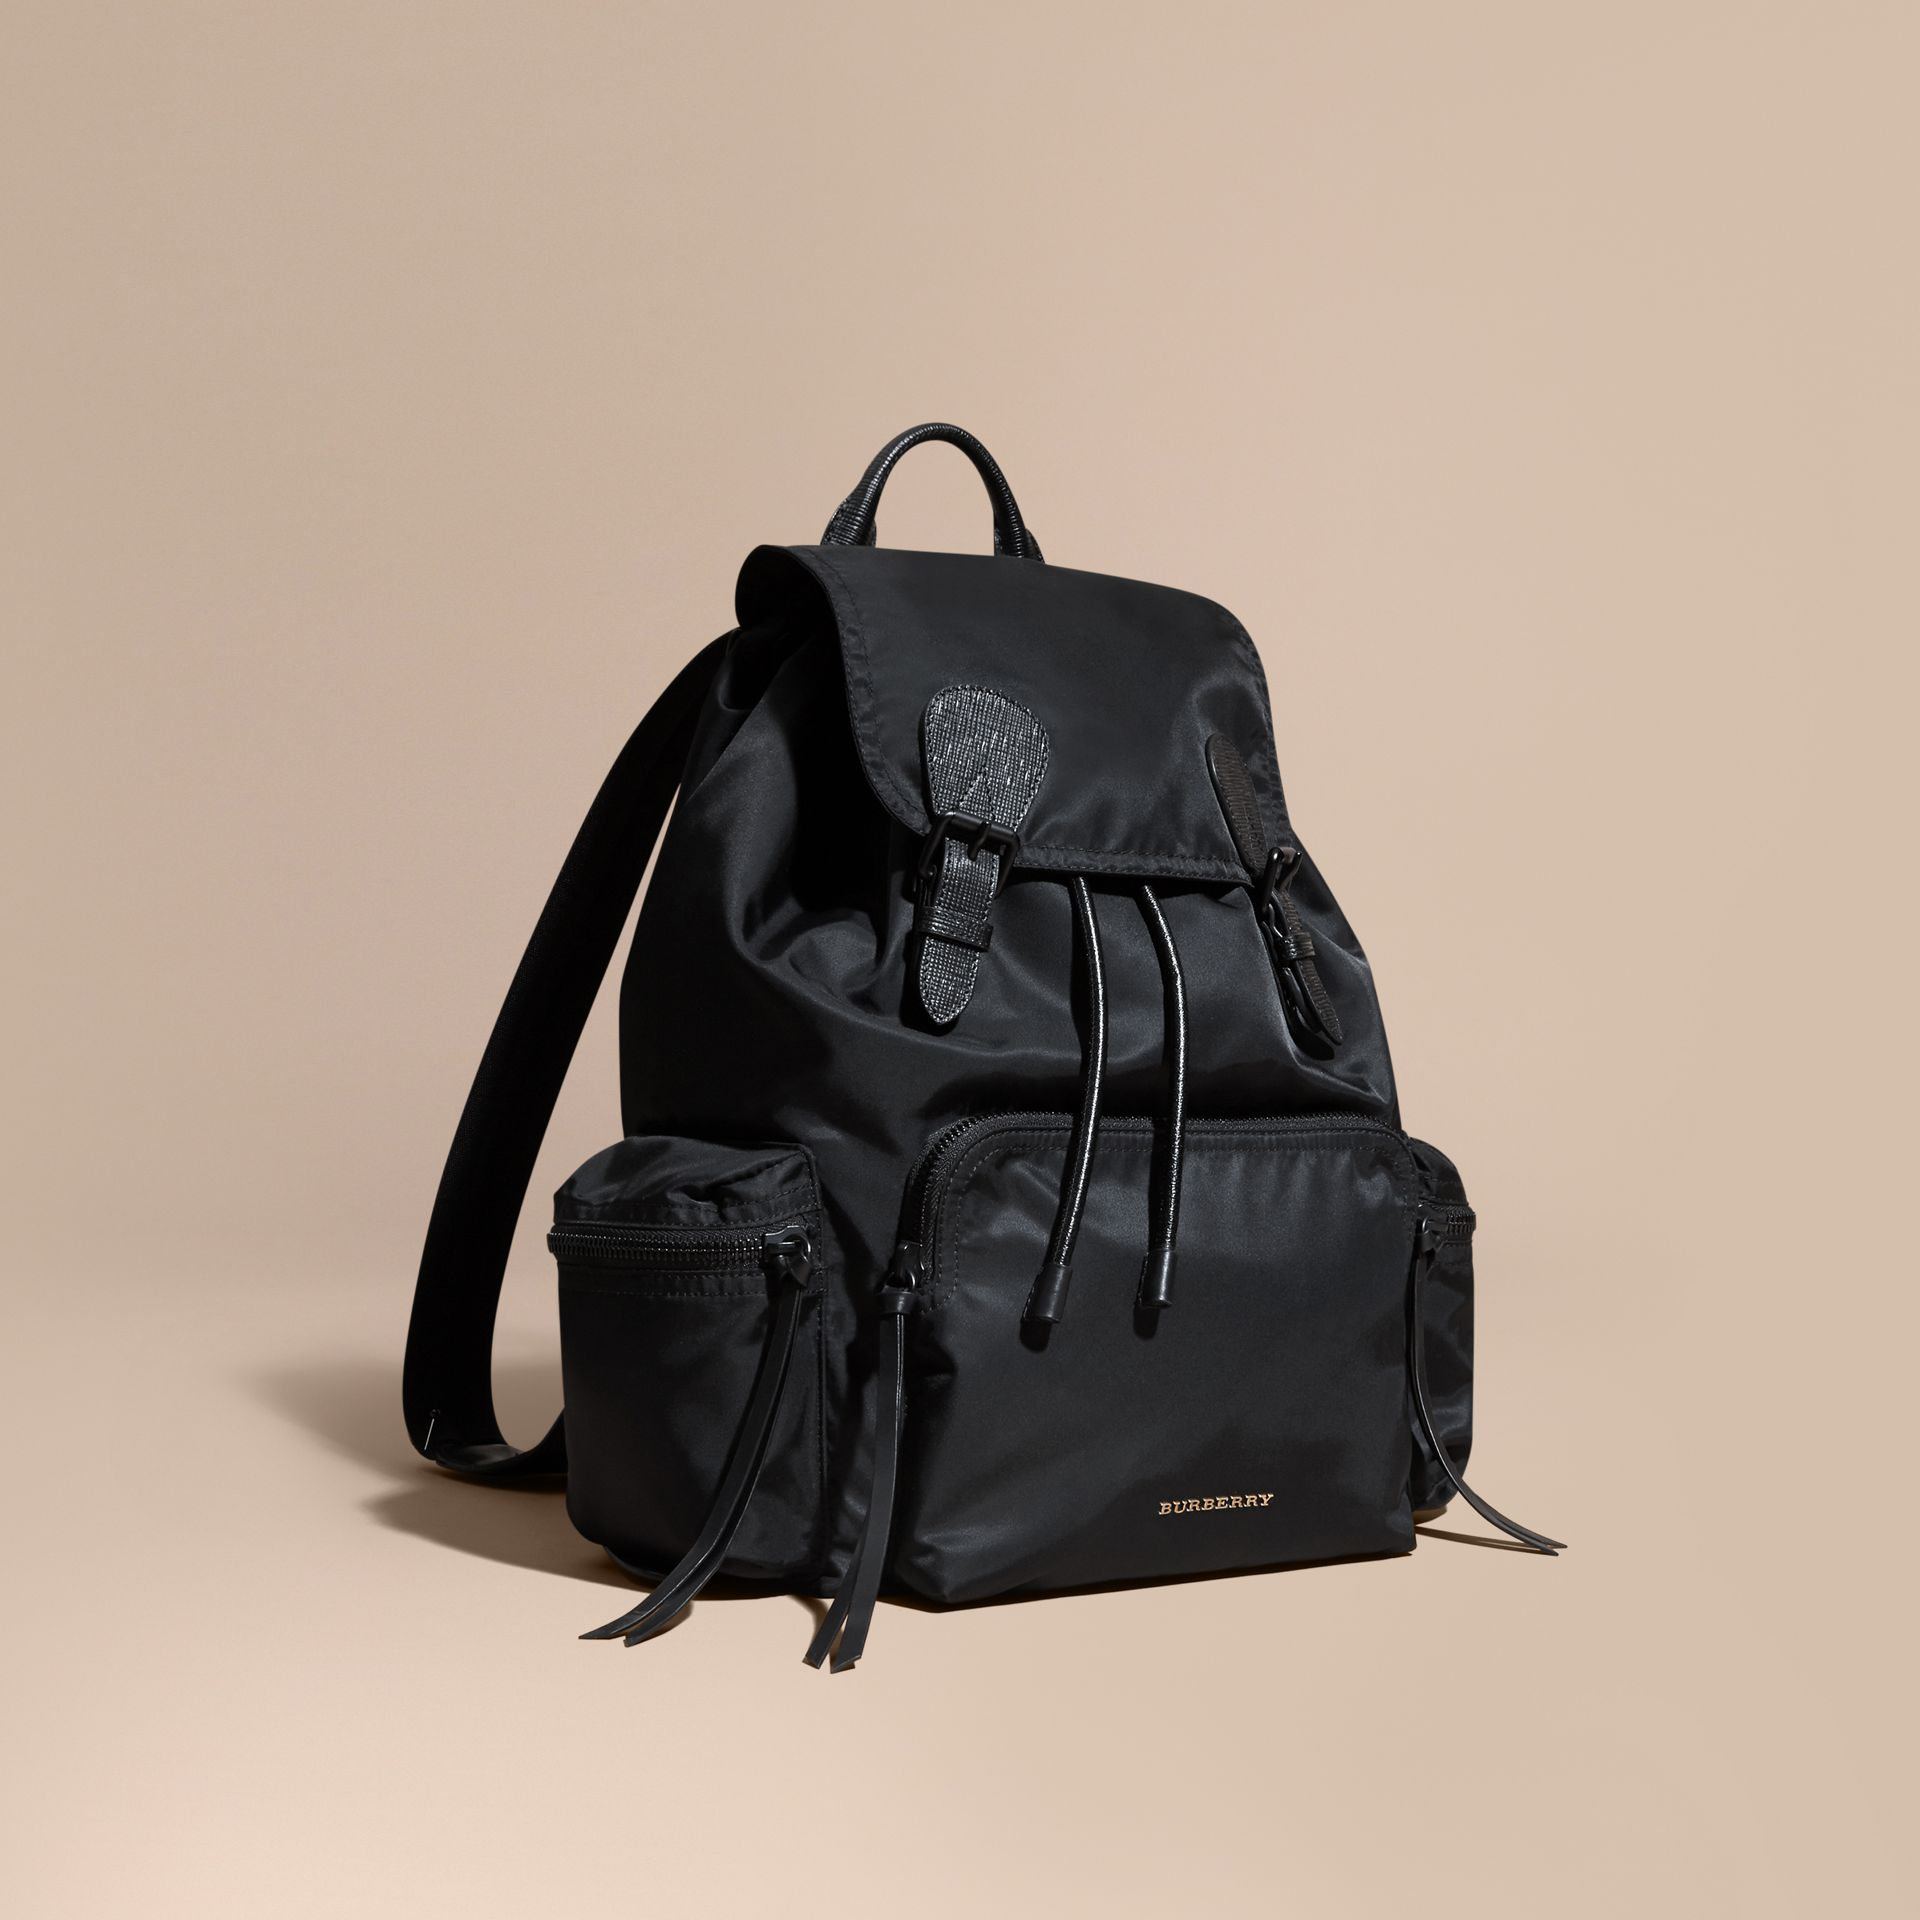 Black The Large Rucksack in Technical Nylon and Leather Black - gallery image 1